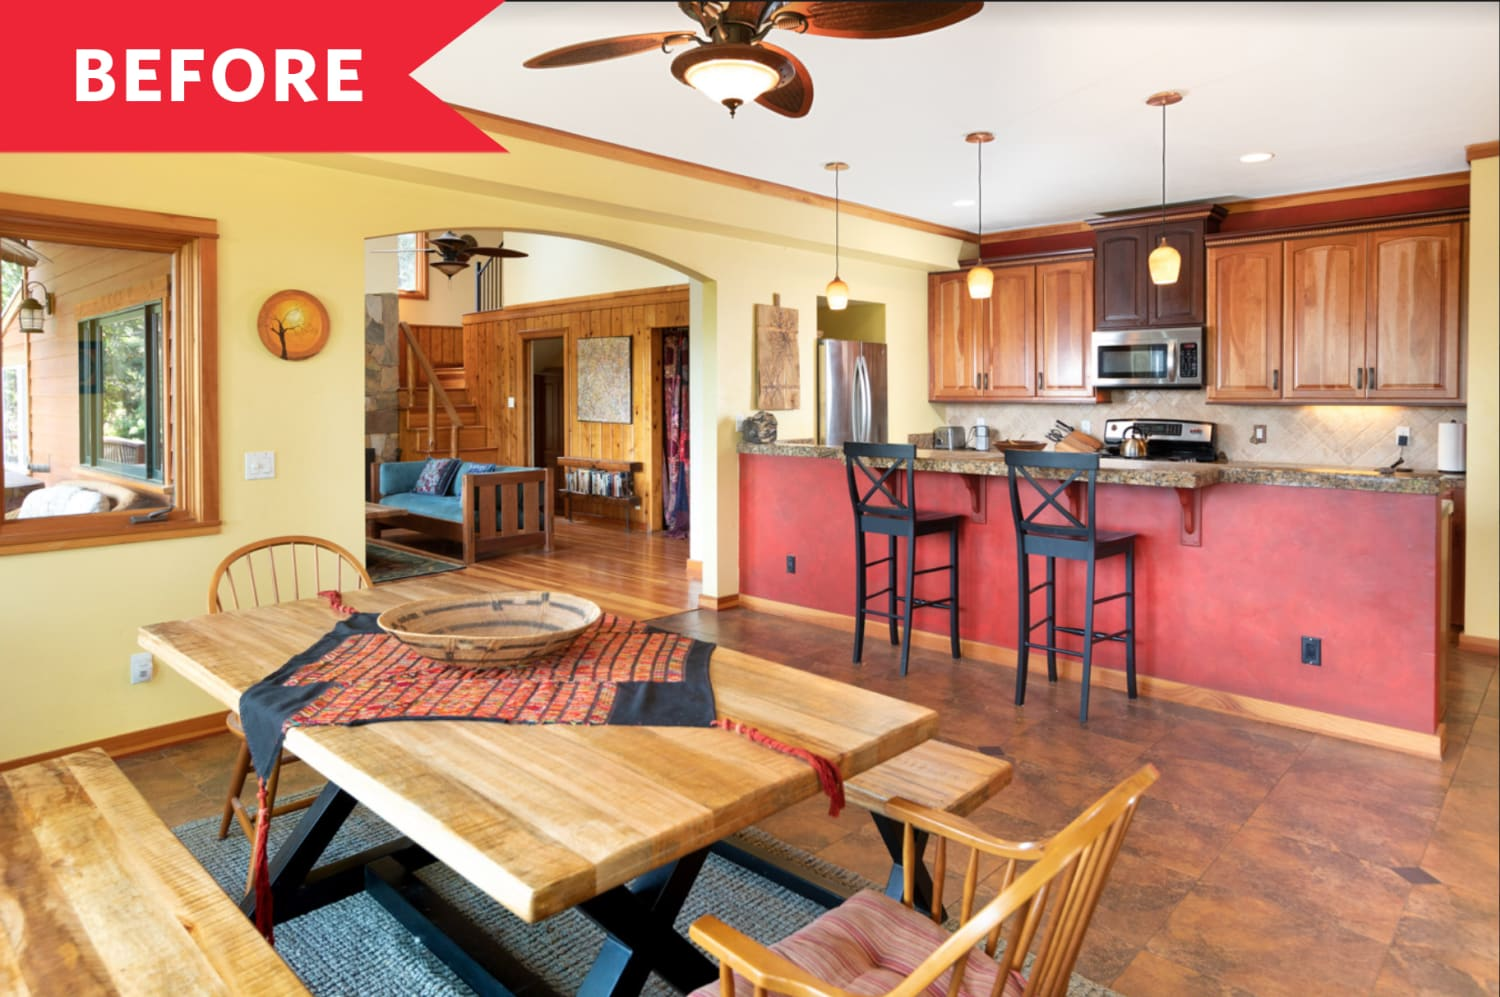 Before and After: See How a Bright Home Staging Job Helped a Place Sell in 3 Days